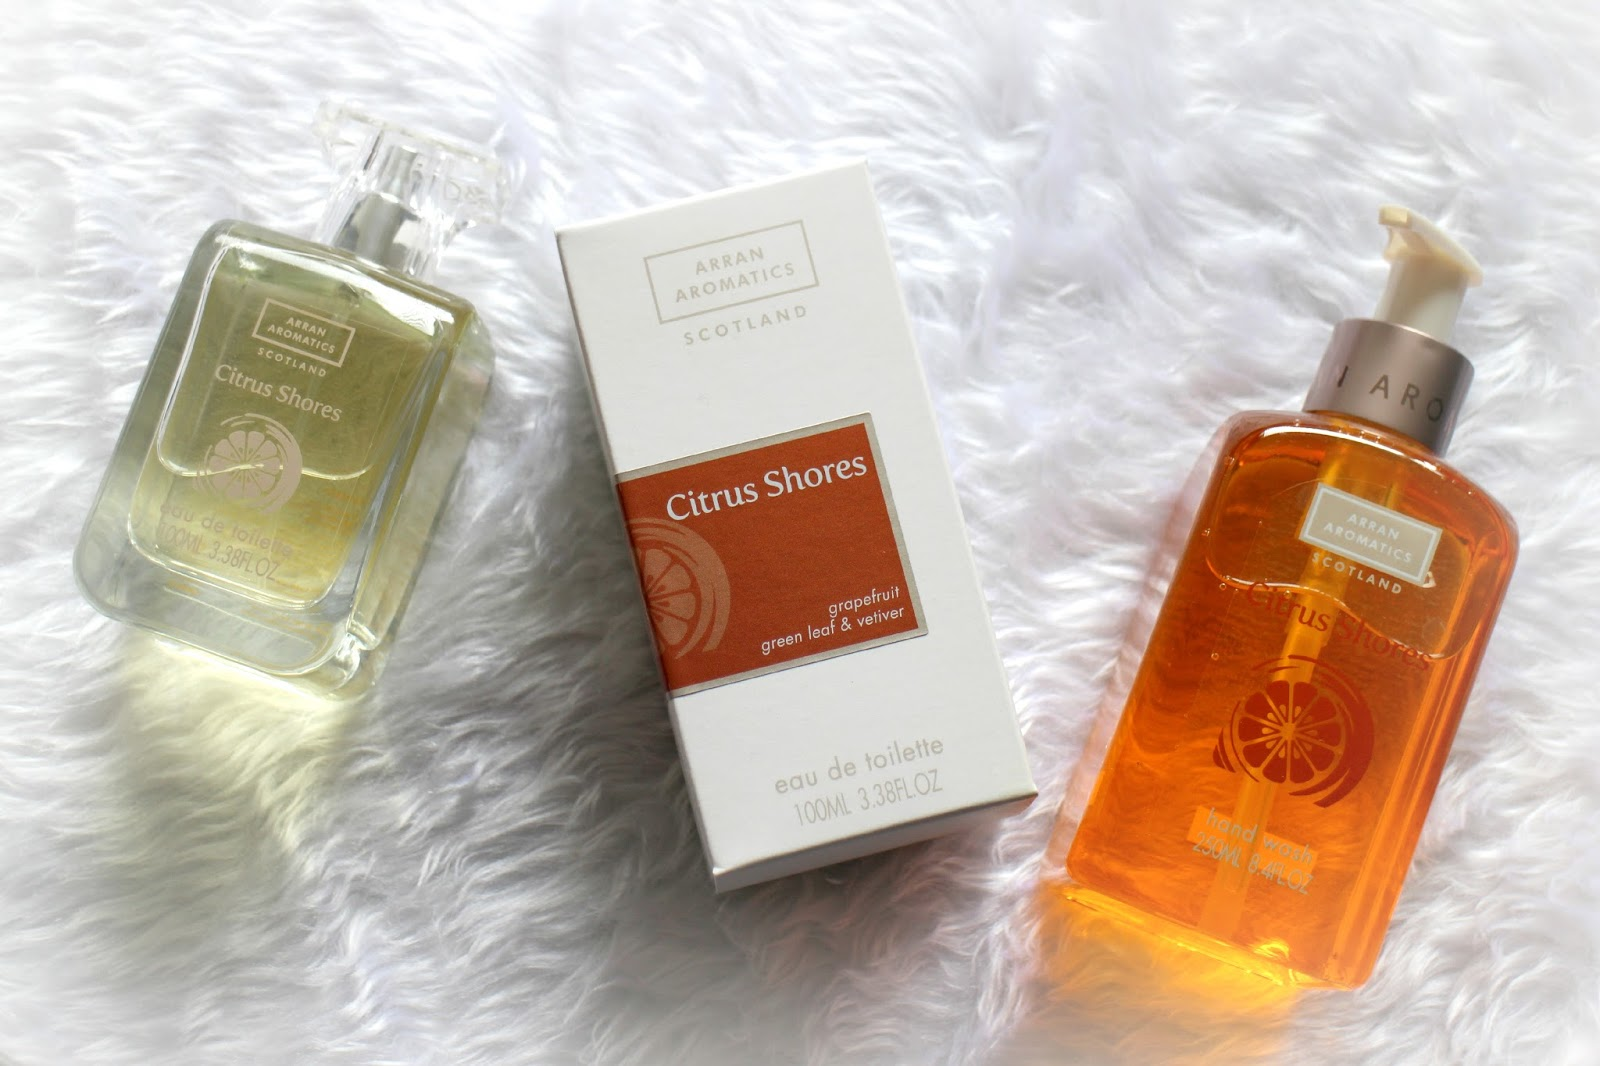 Arran Aromatics Citrus Shores